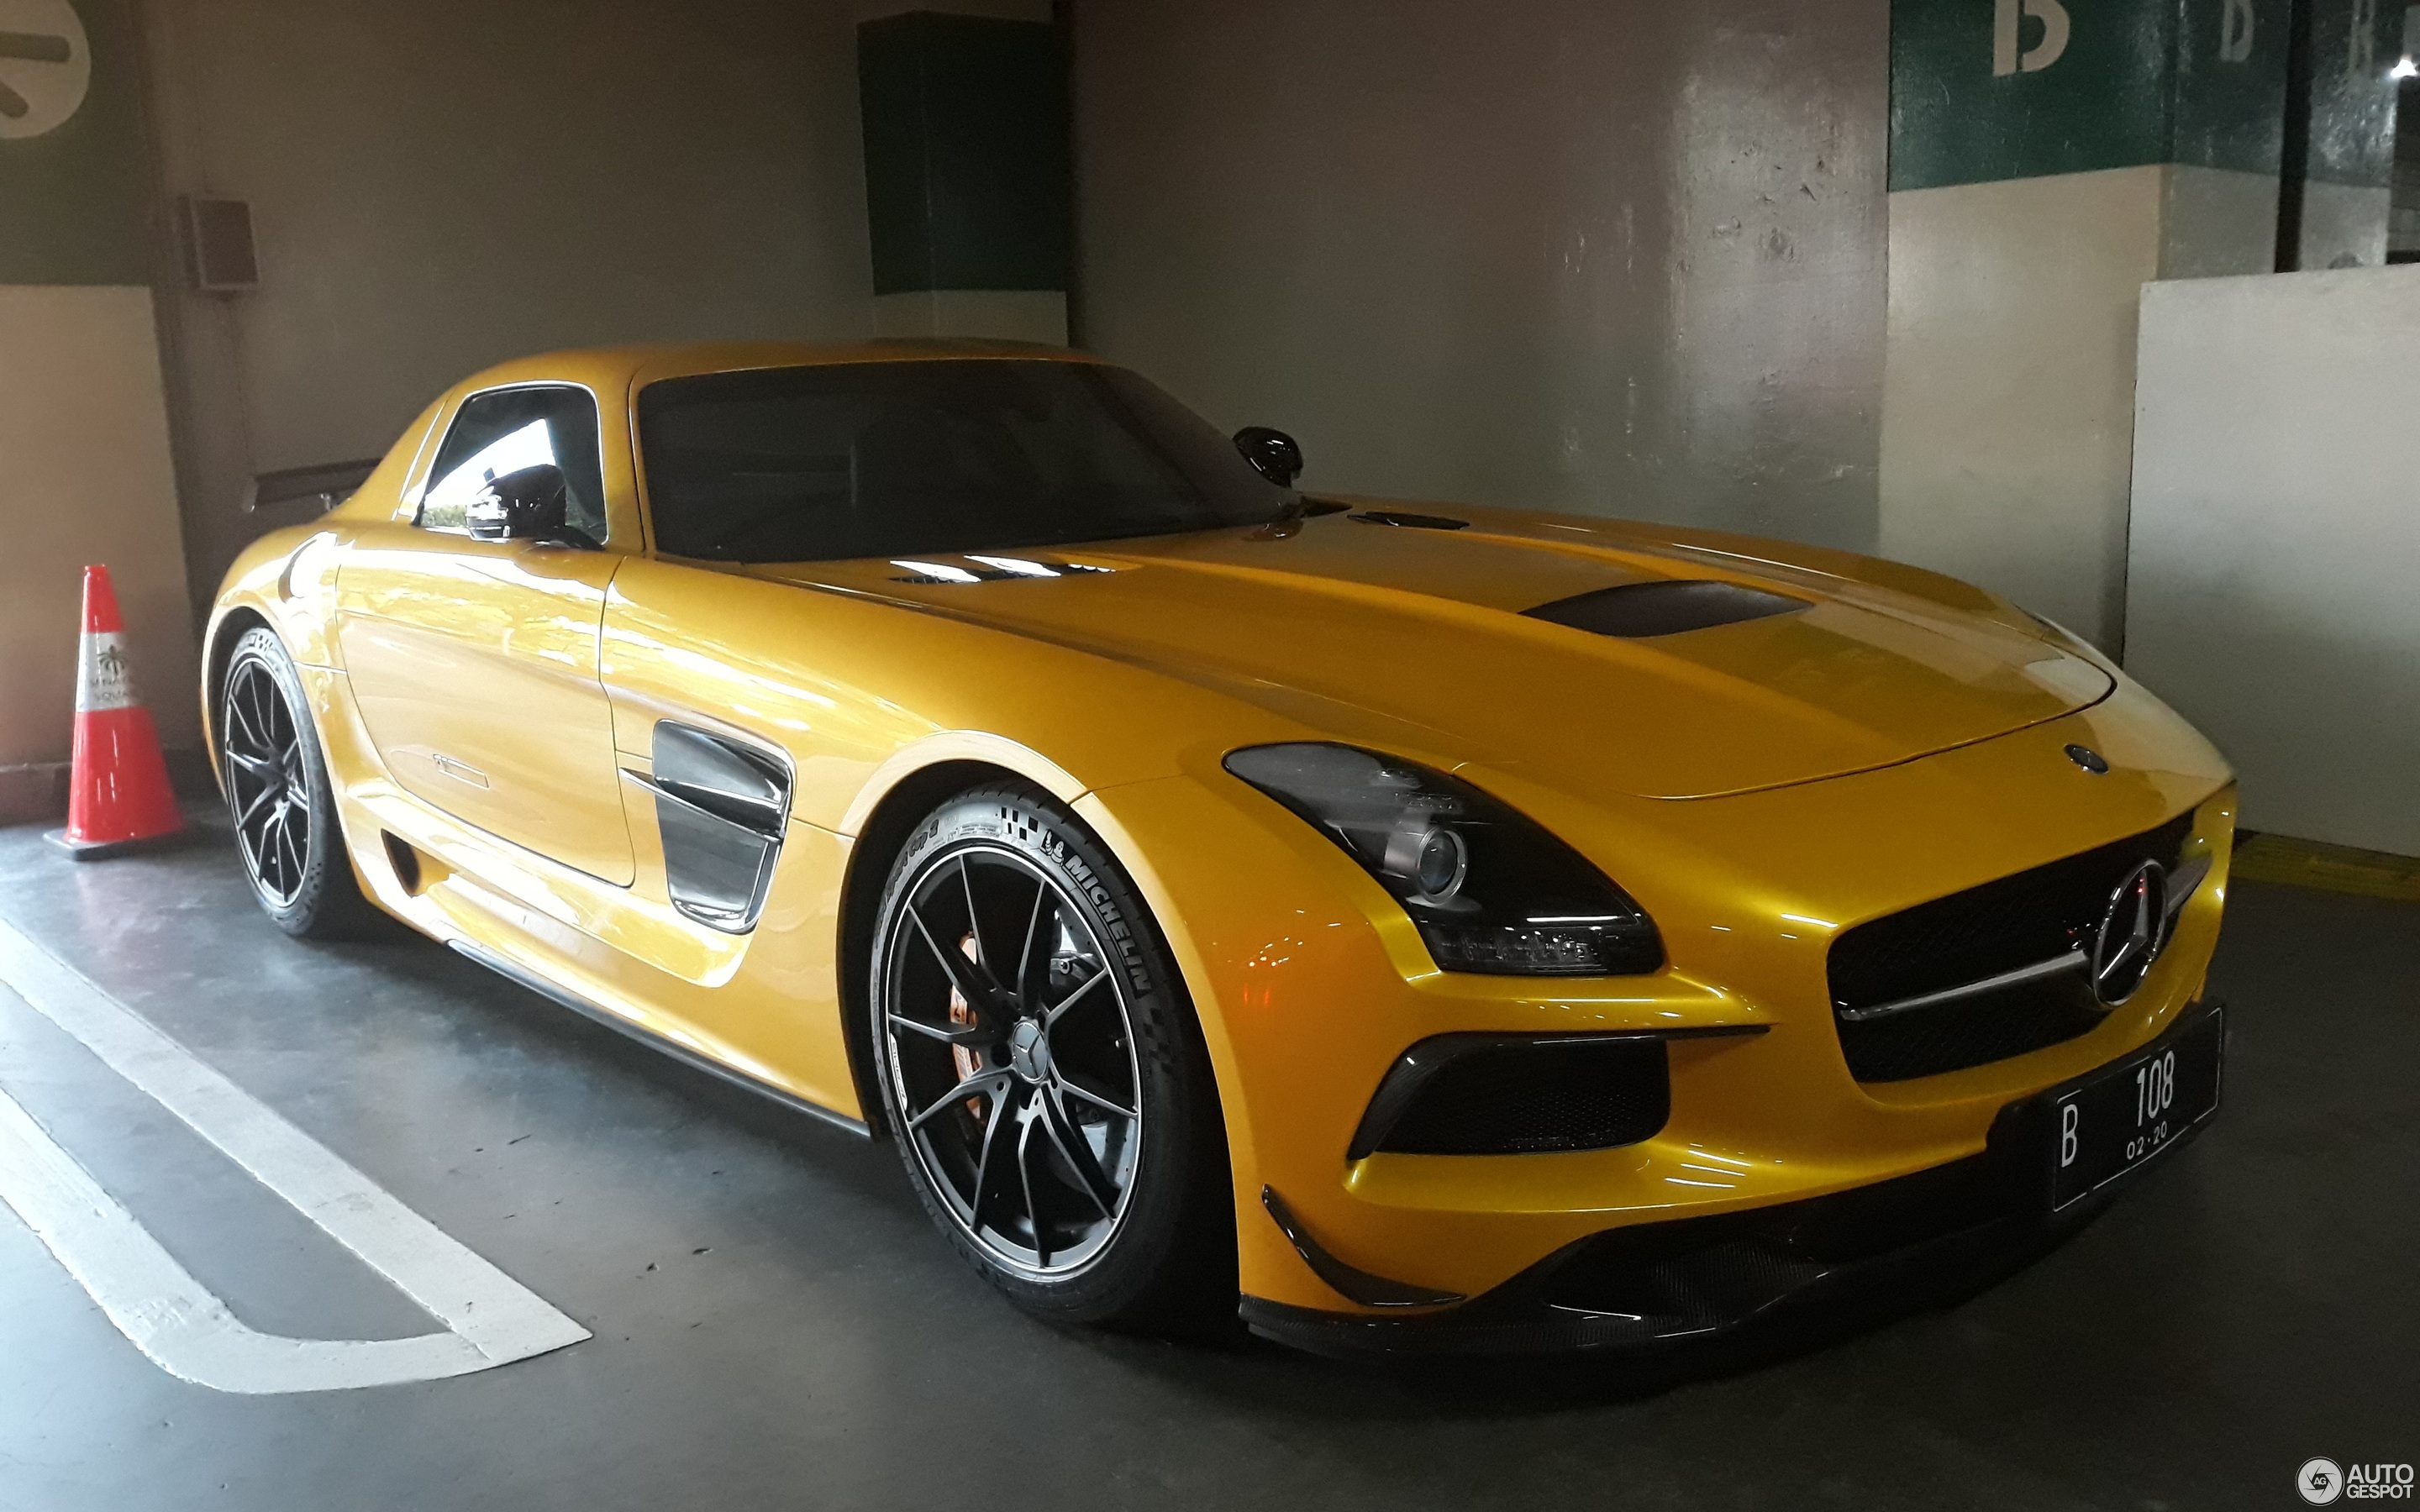 Sls Black Series >> Mercedes Benz Sls Amg Black Series 8 July 2019 Autogespot